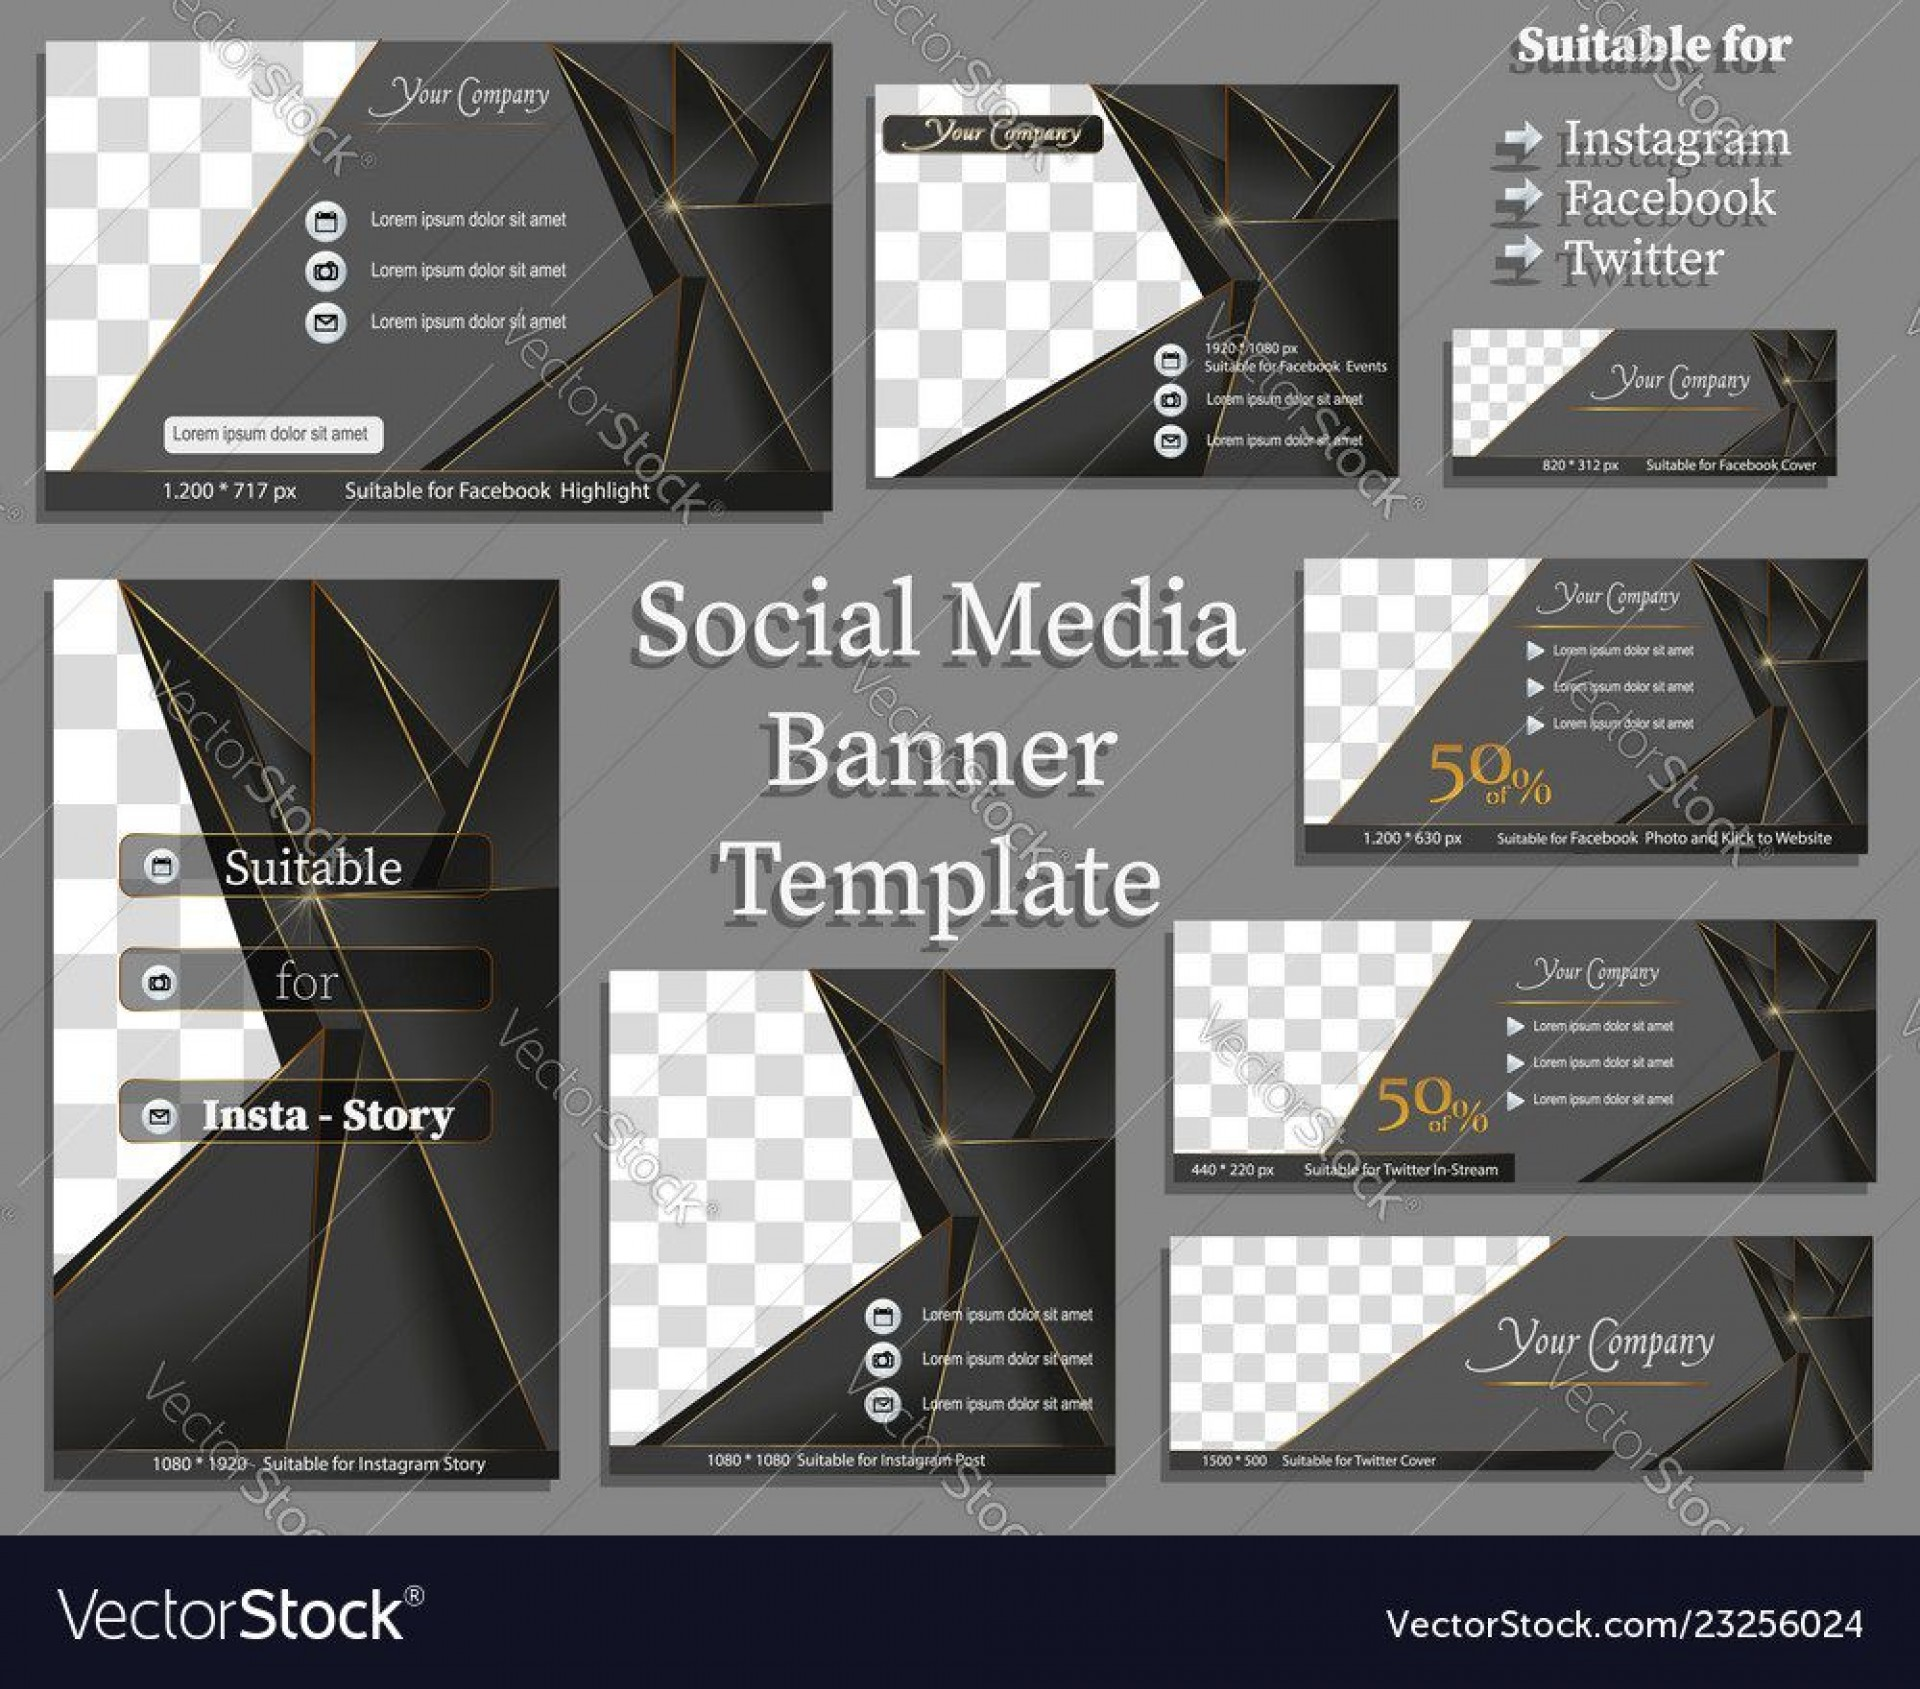 010 Fascinating Social Media Banner Template Free Highest Quality 1920